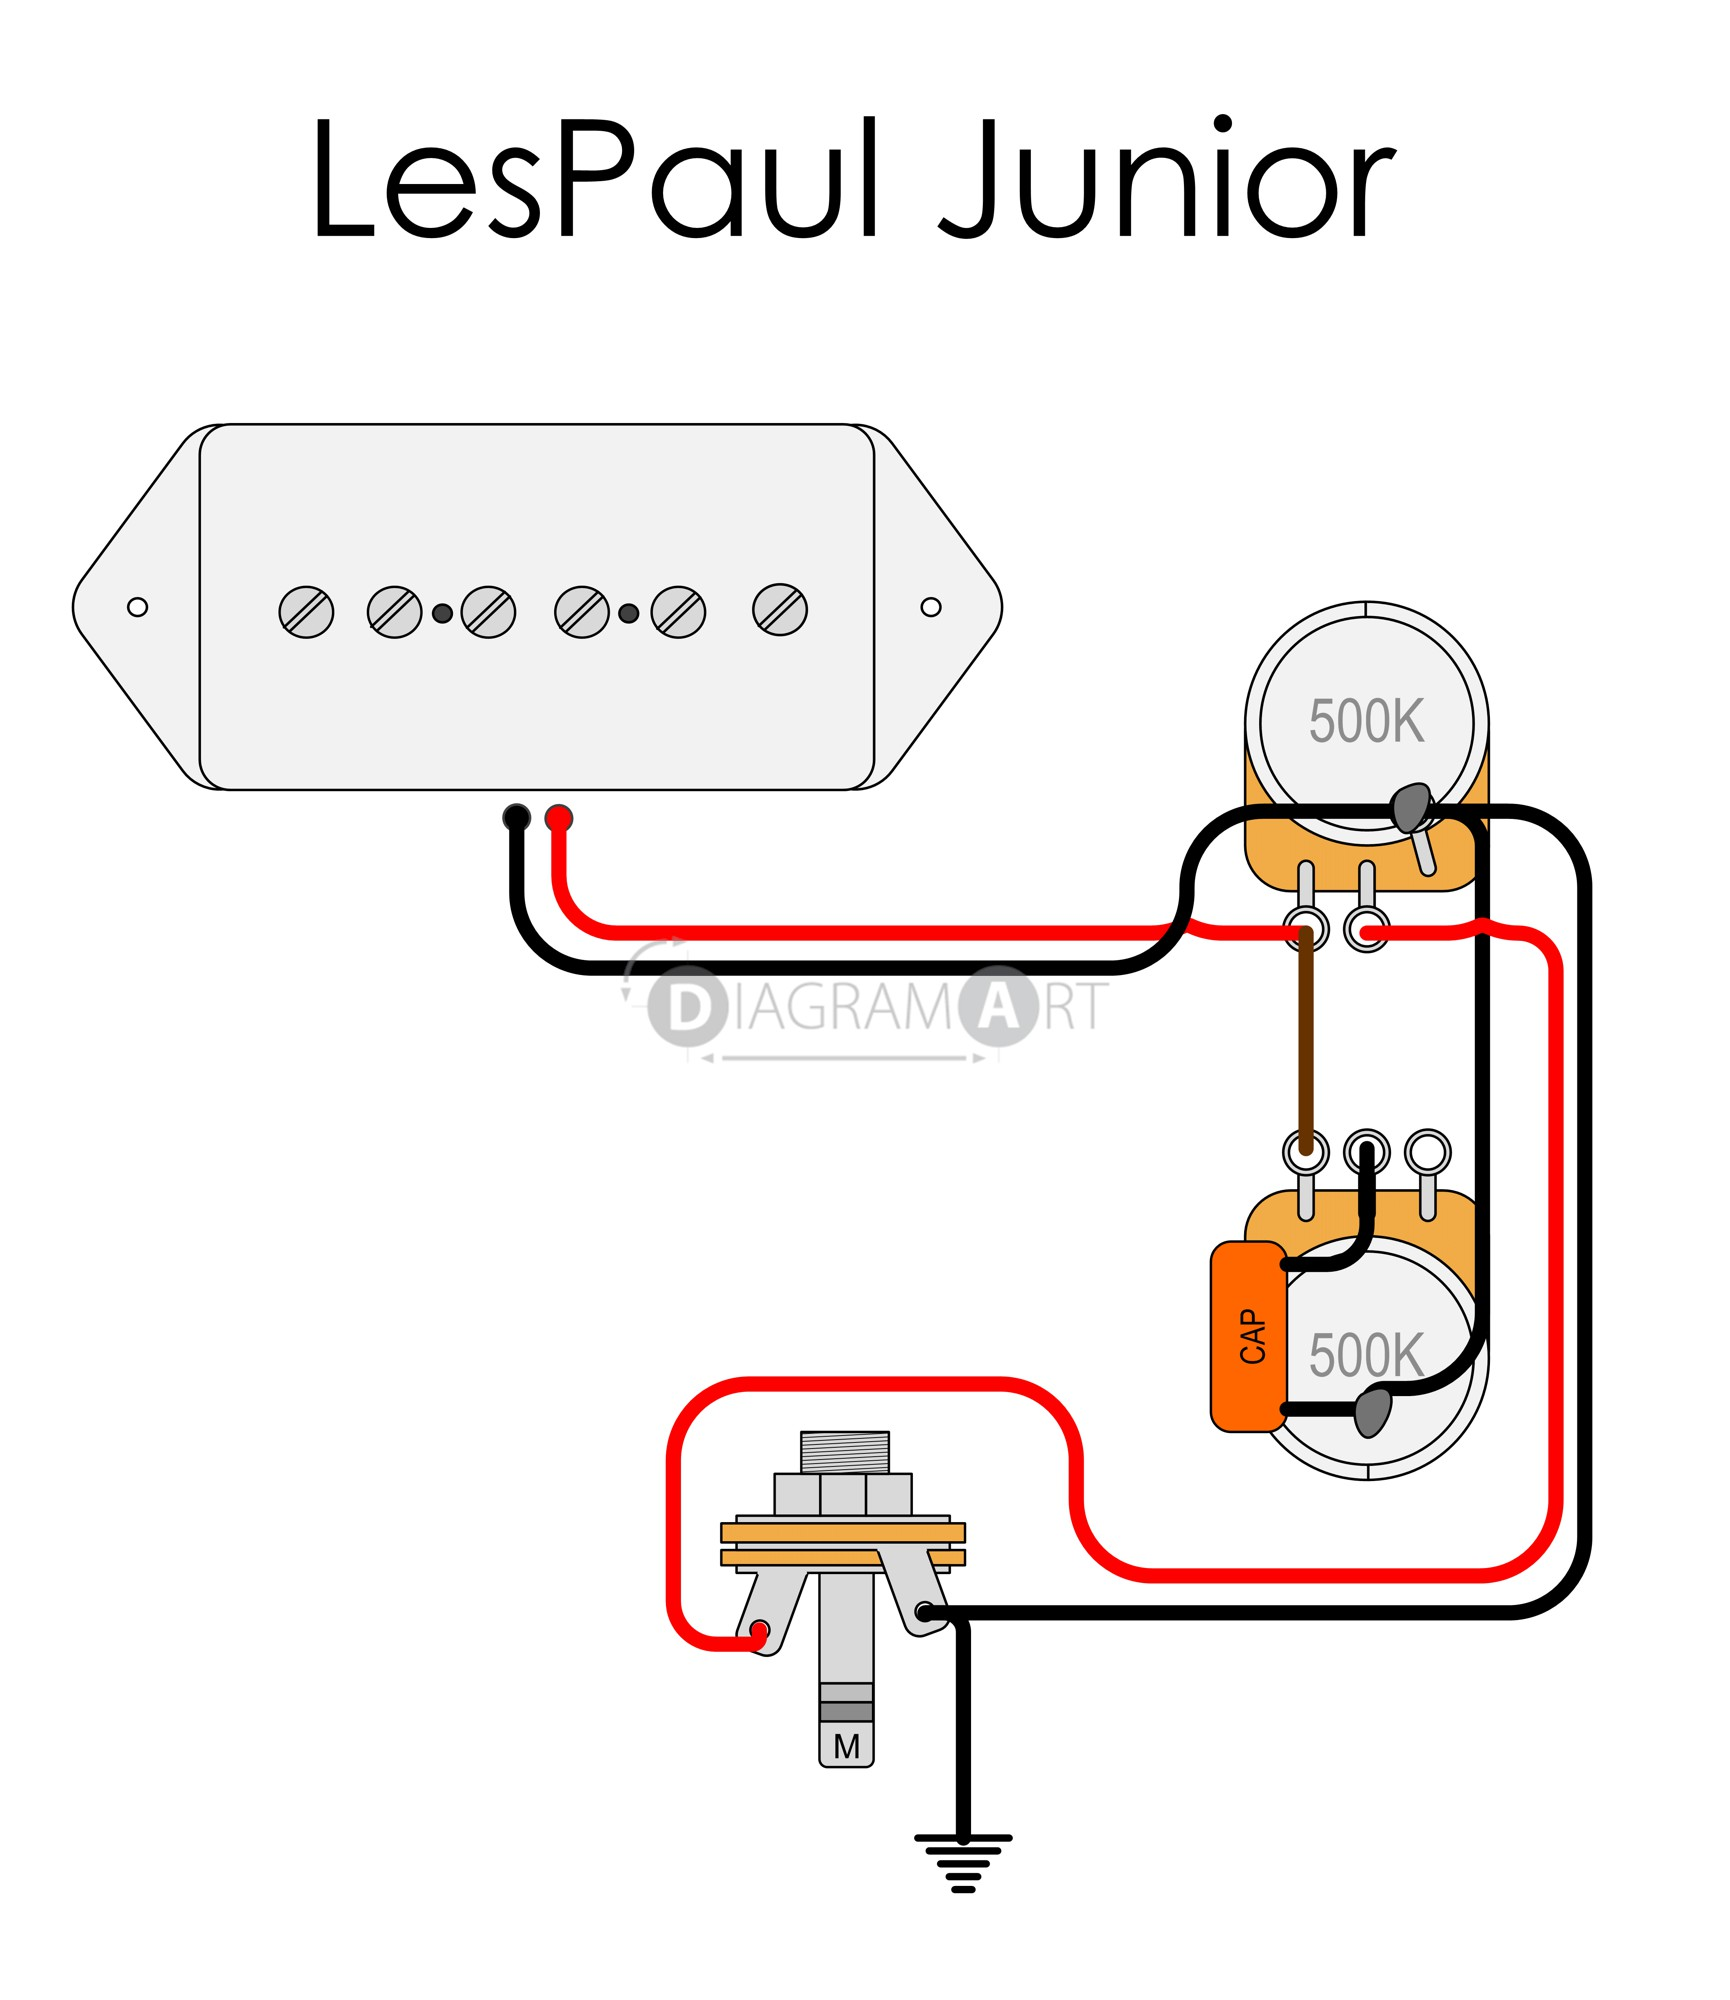 Am Beautiful Les Paul Junior Wiring Diagram Wiring Diagram Of Les Paul Junior Wiring Diagram on 3 humbucker les paul wiring diagram